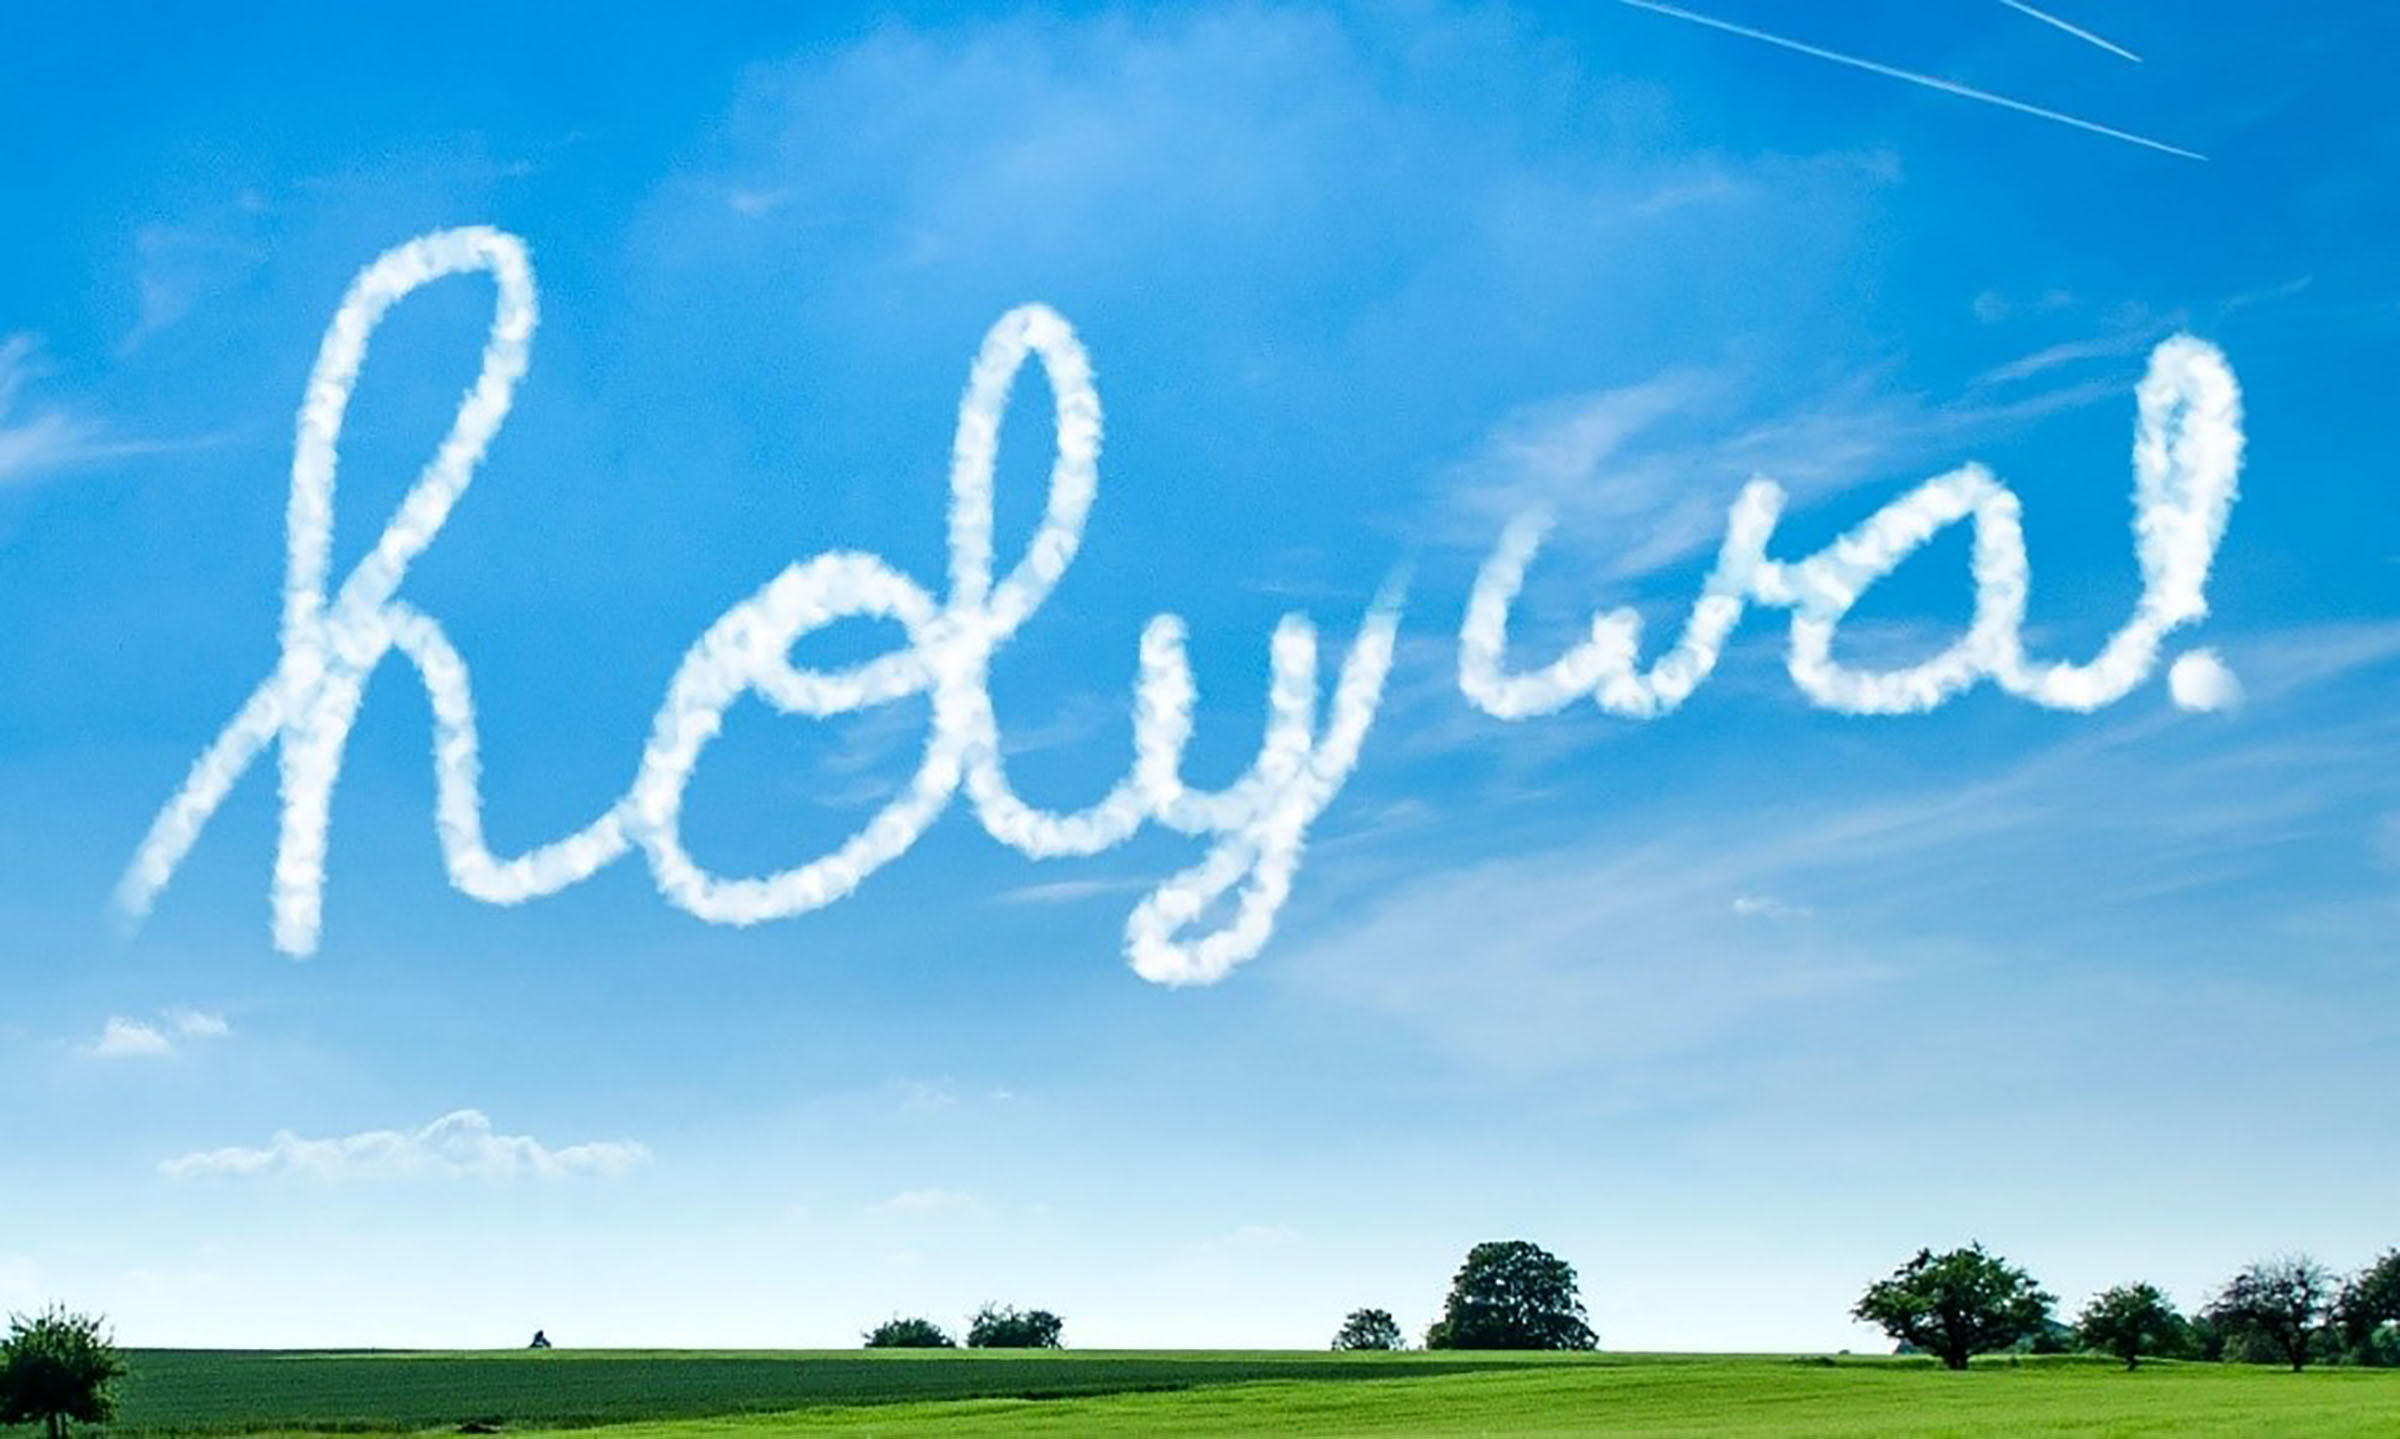 Image of holy wa skywriting